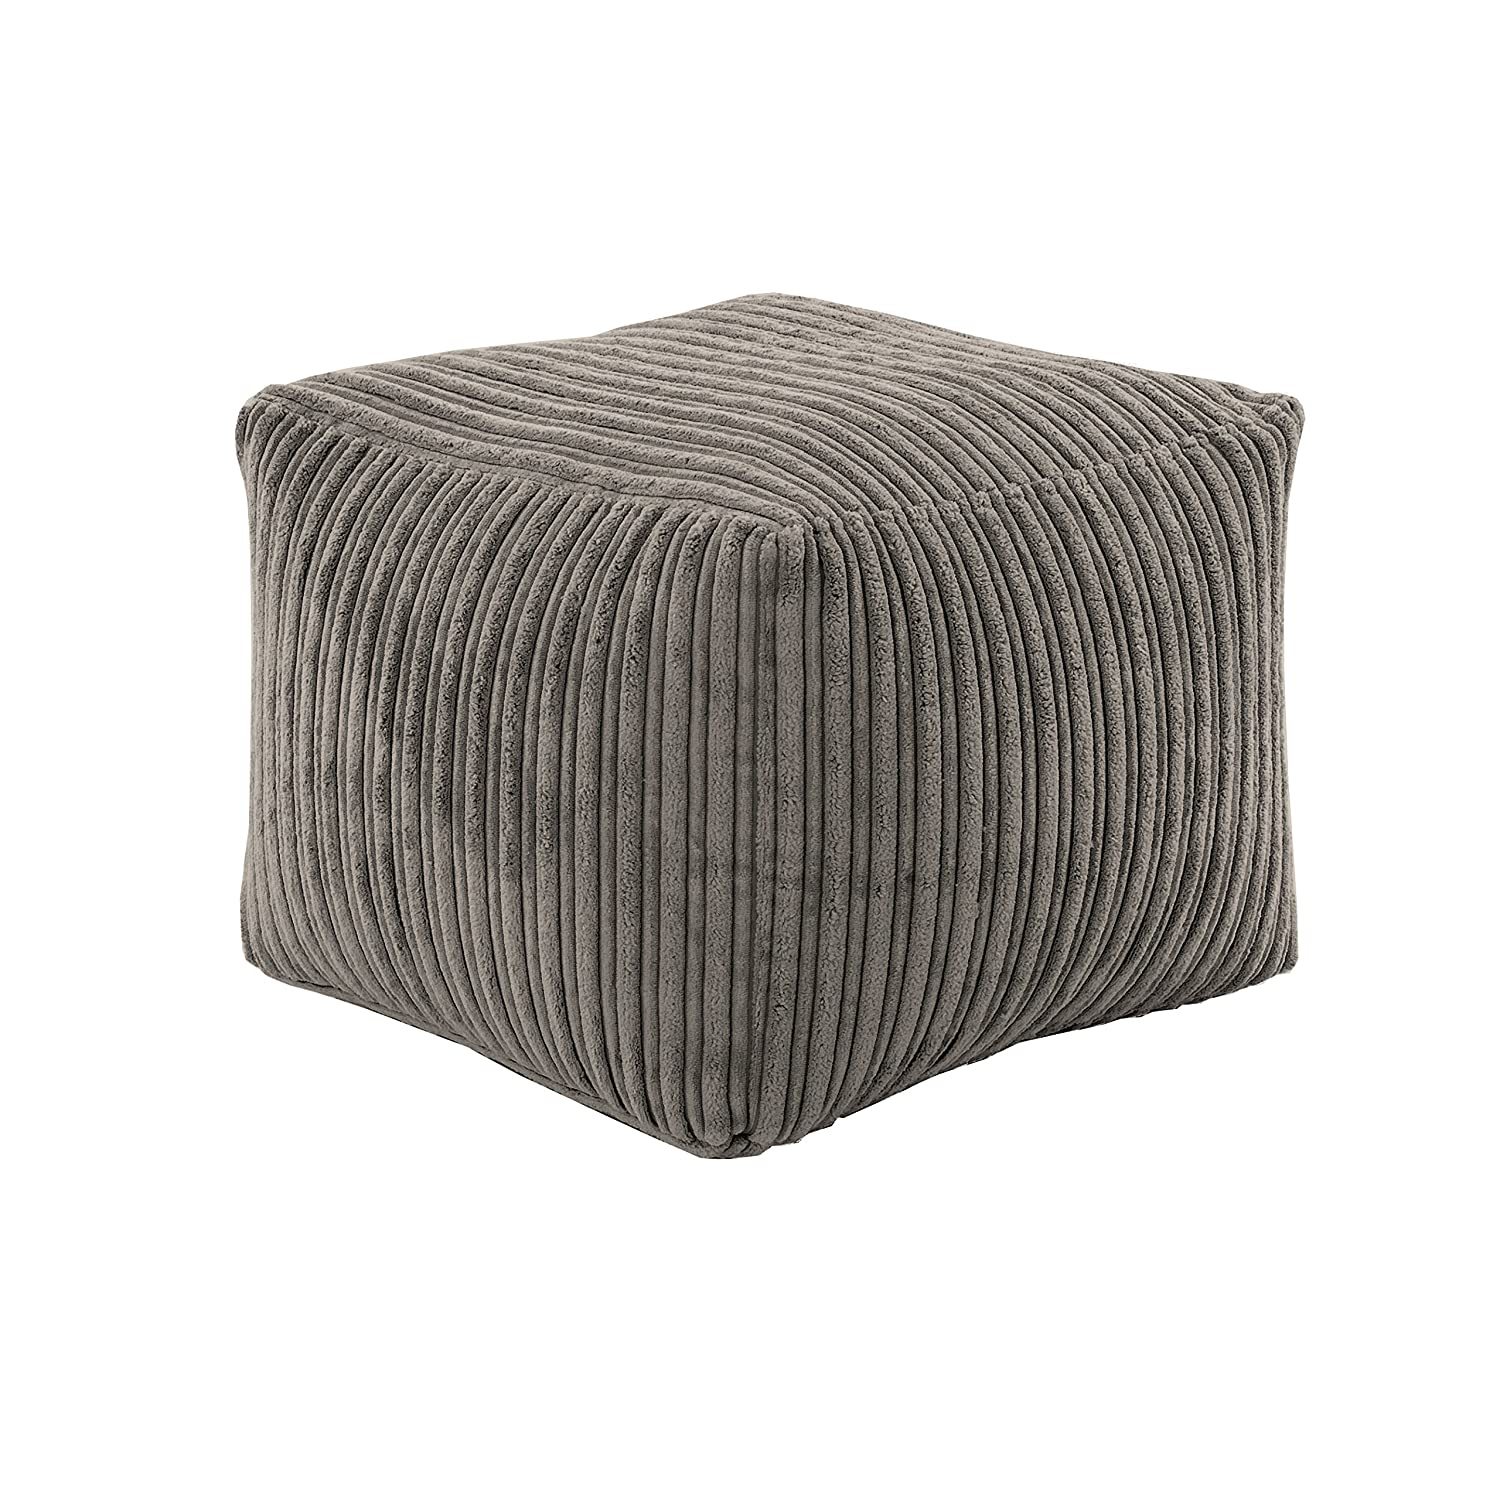 Hippo Charcoal Square Bean Bag Footstool Pouffe Seat in Soft Jumbo Cord Fabric